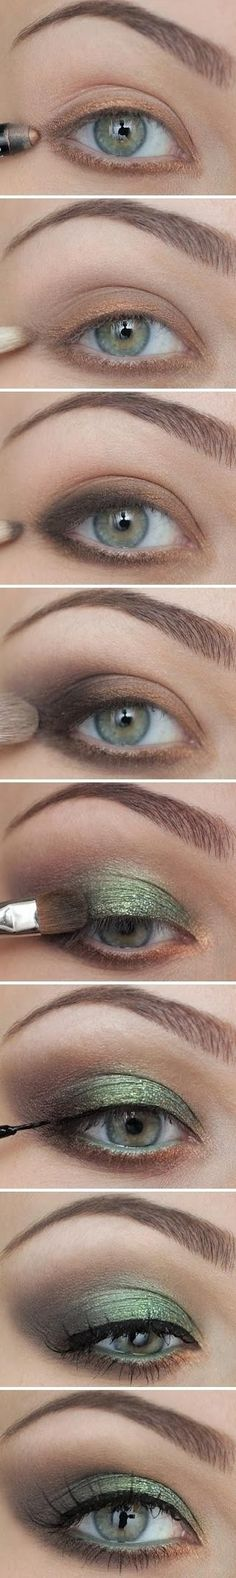 Holiday eyes https://www.youniqueproducts.com/BrisBeautyBar/party/924442/view